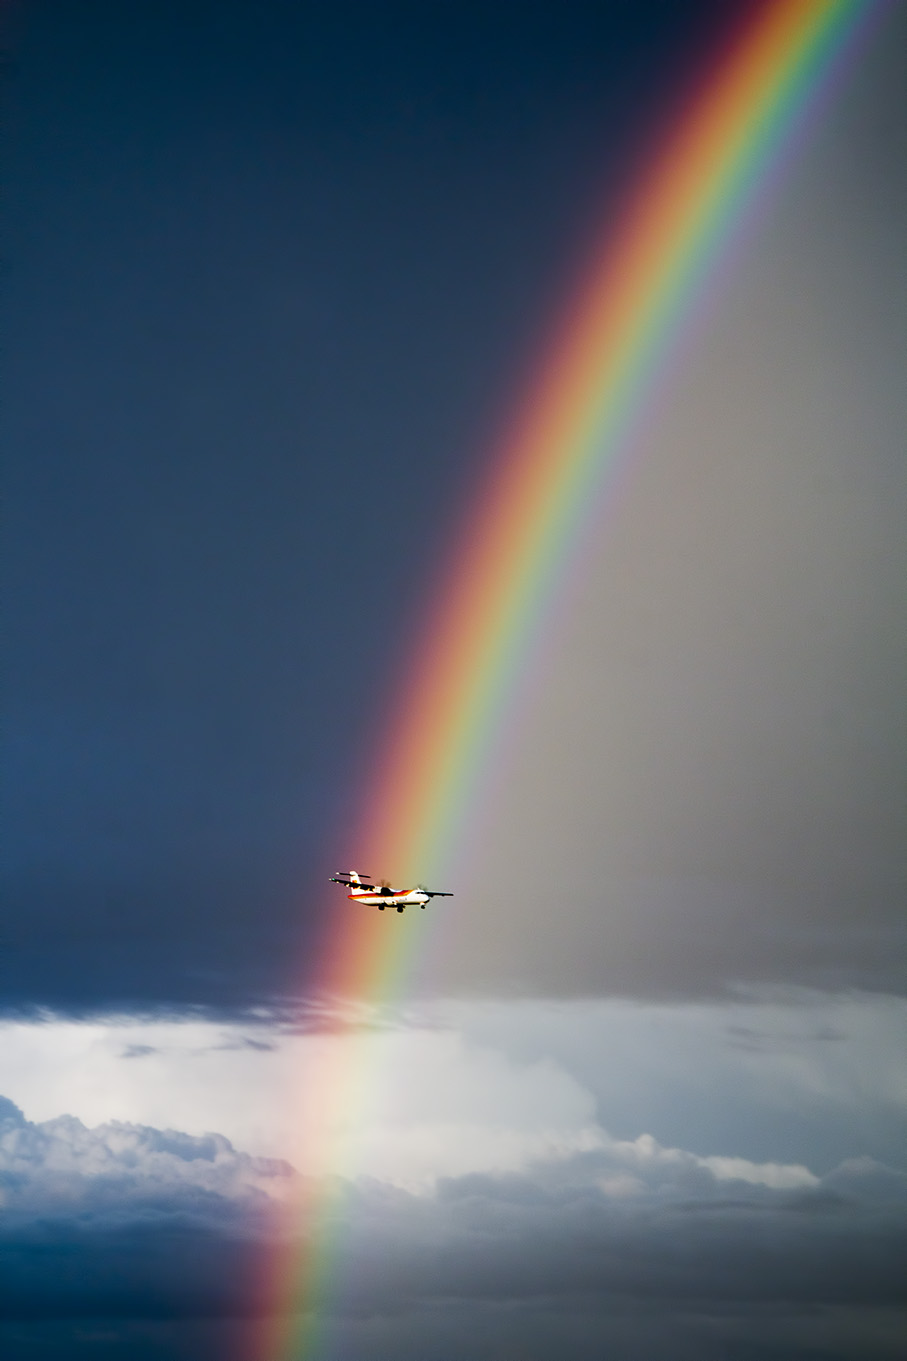 Rainbow airplane